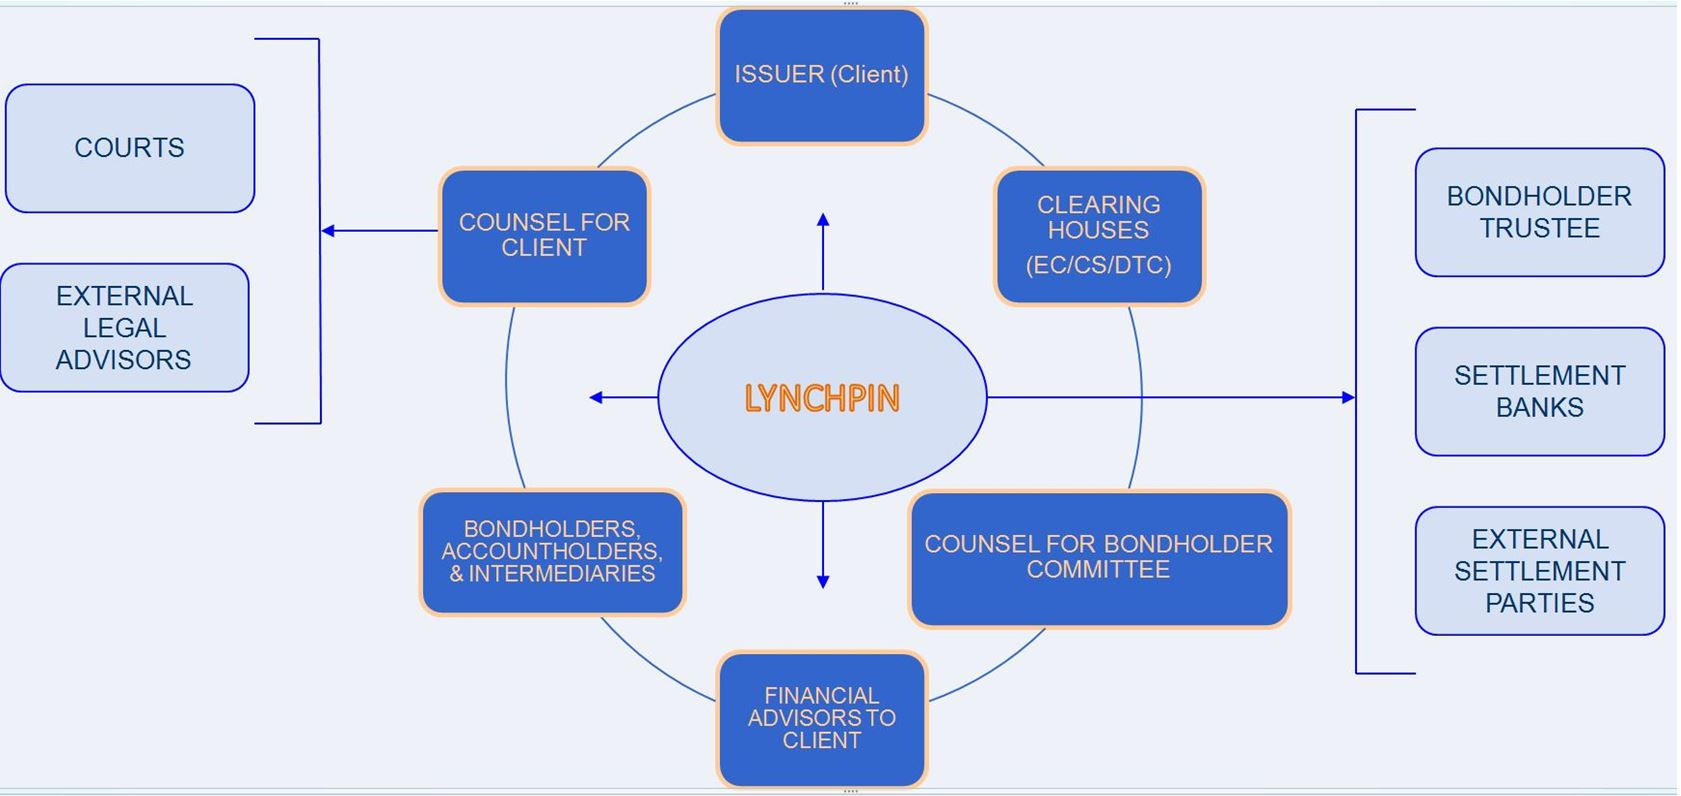 Lynchpin's role in the Corporate Action Participants